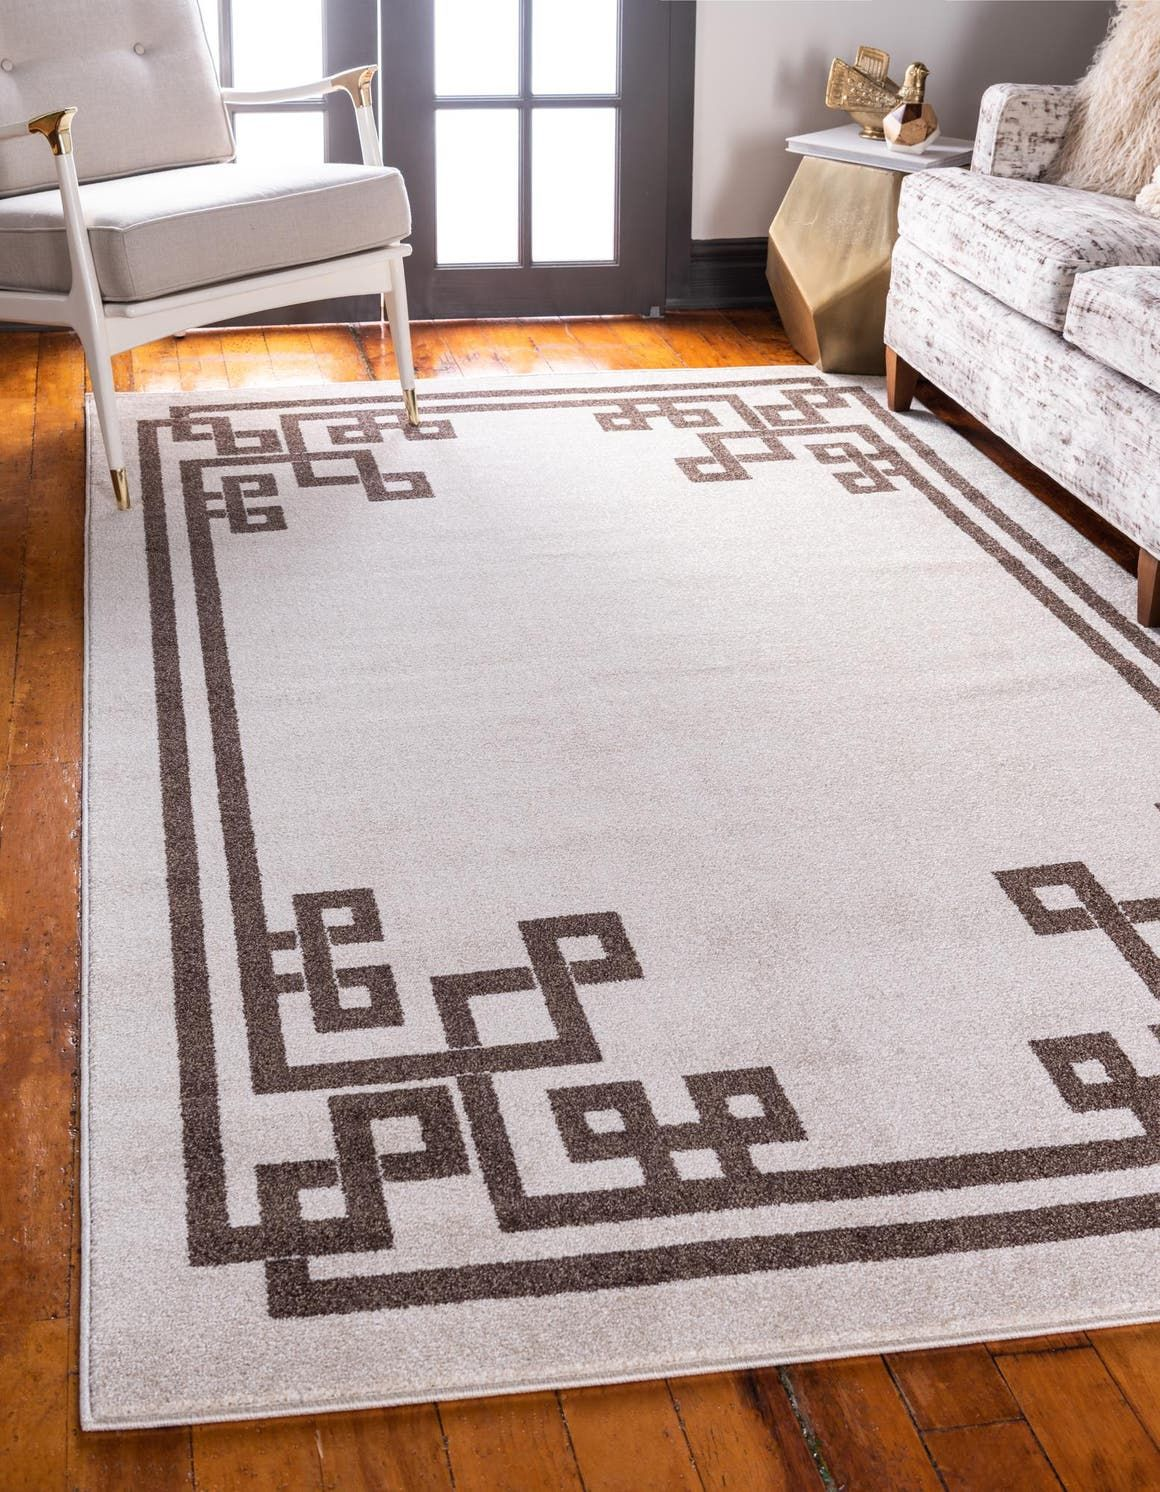 Beige Greek Key Area Rug In 2020 With Images Unique Loom